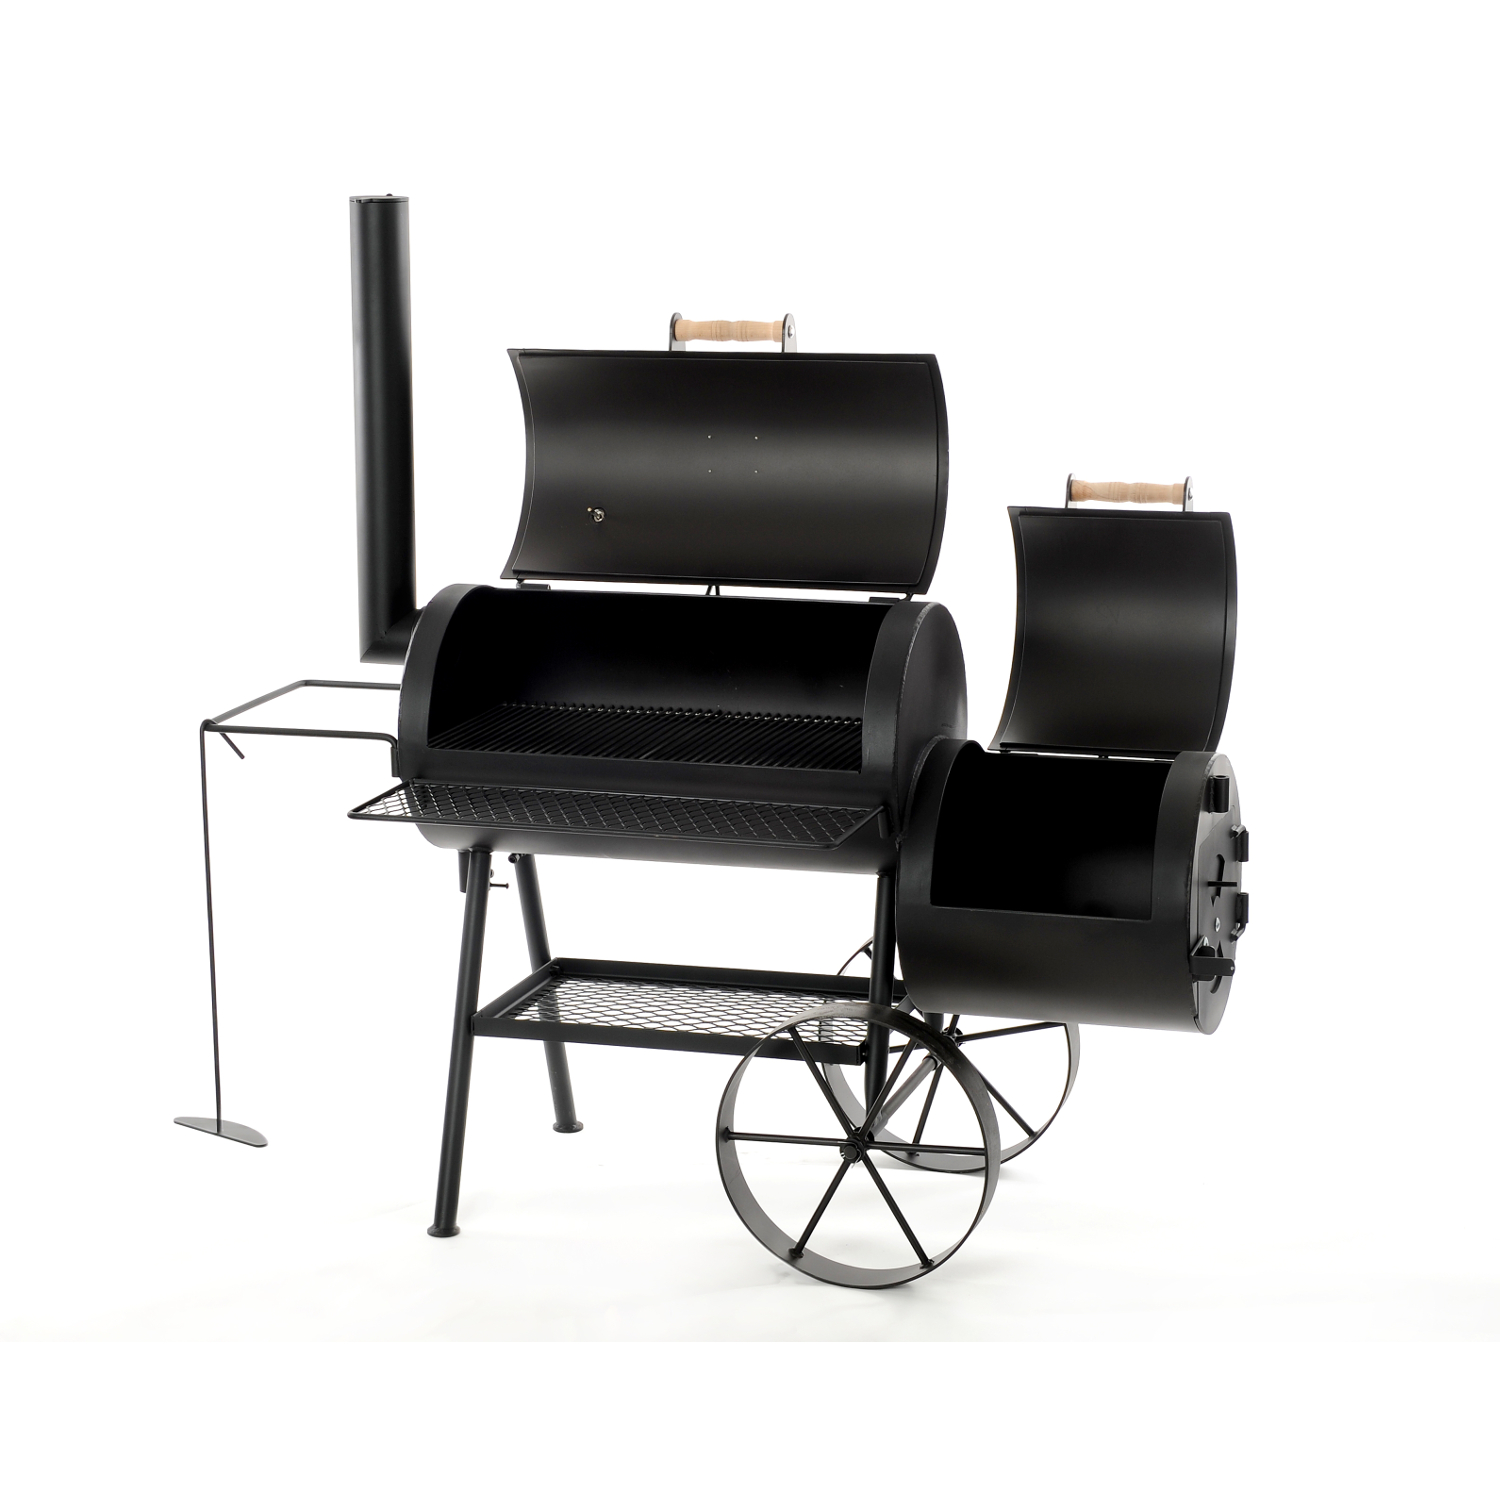 joe 39 s bbq smoker das original 16 tradition online kaufen grilljack ch. Black Bedroom Furniture Sets. Home Design Ideas